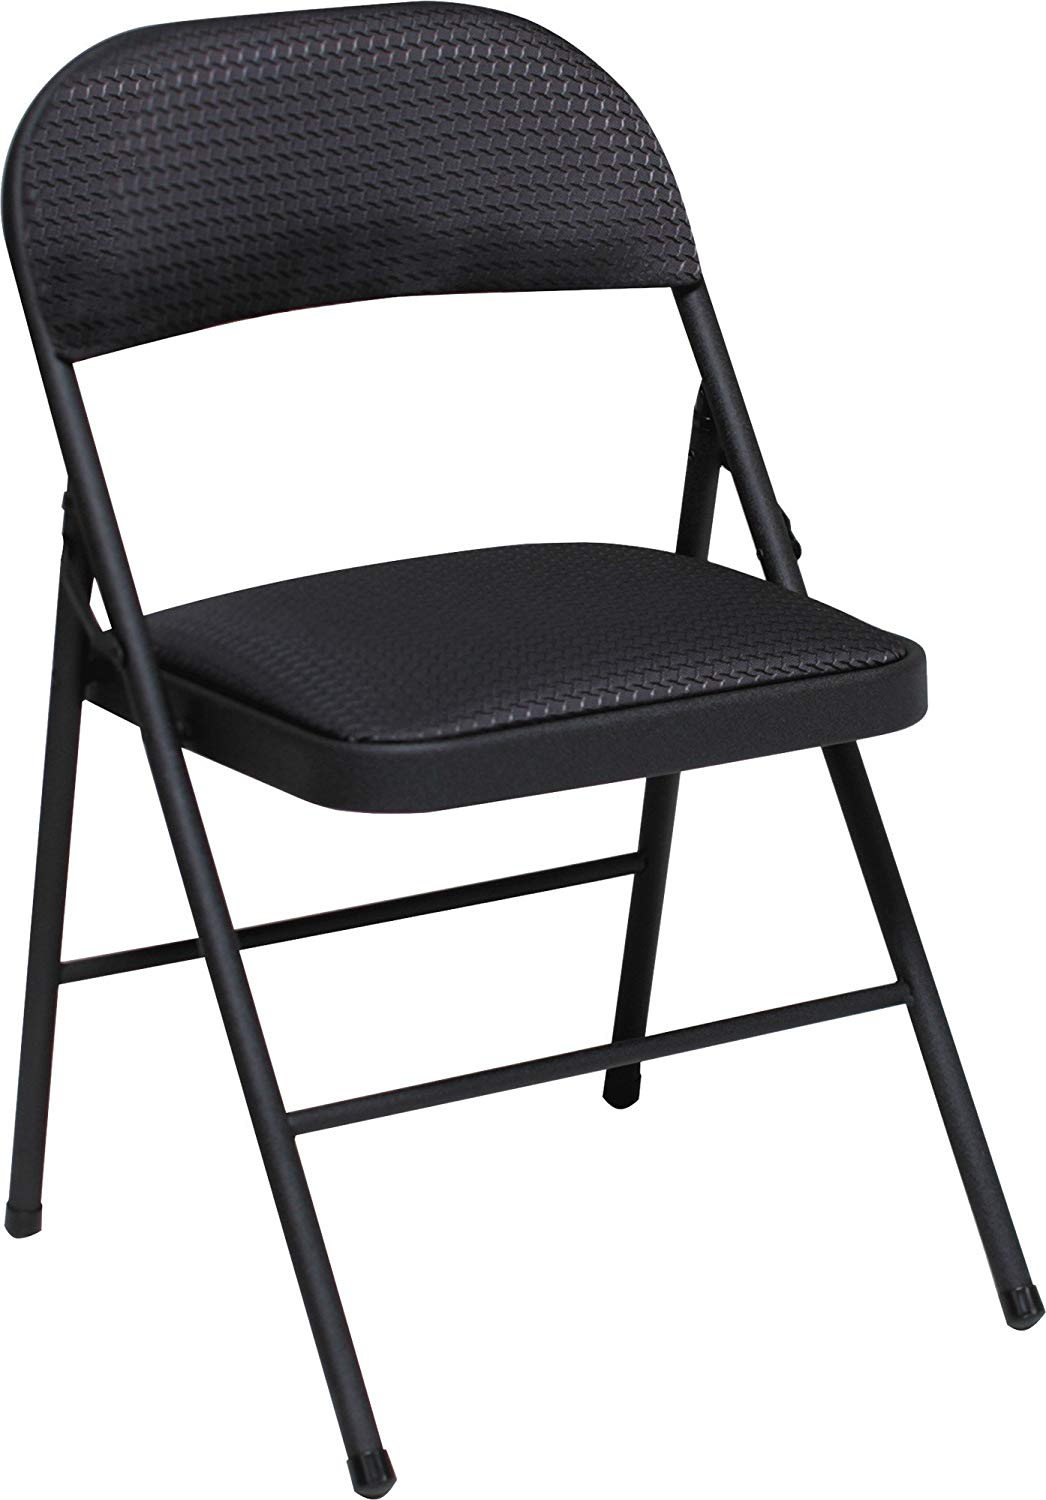 Soft Folding Chairs Single Item Cosco Fabric Folding Chairs Set Of 4 Retail Price